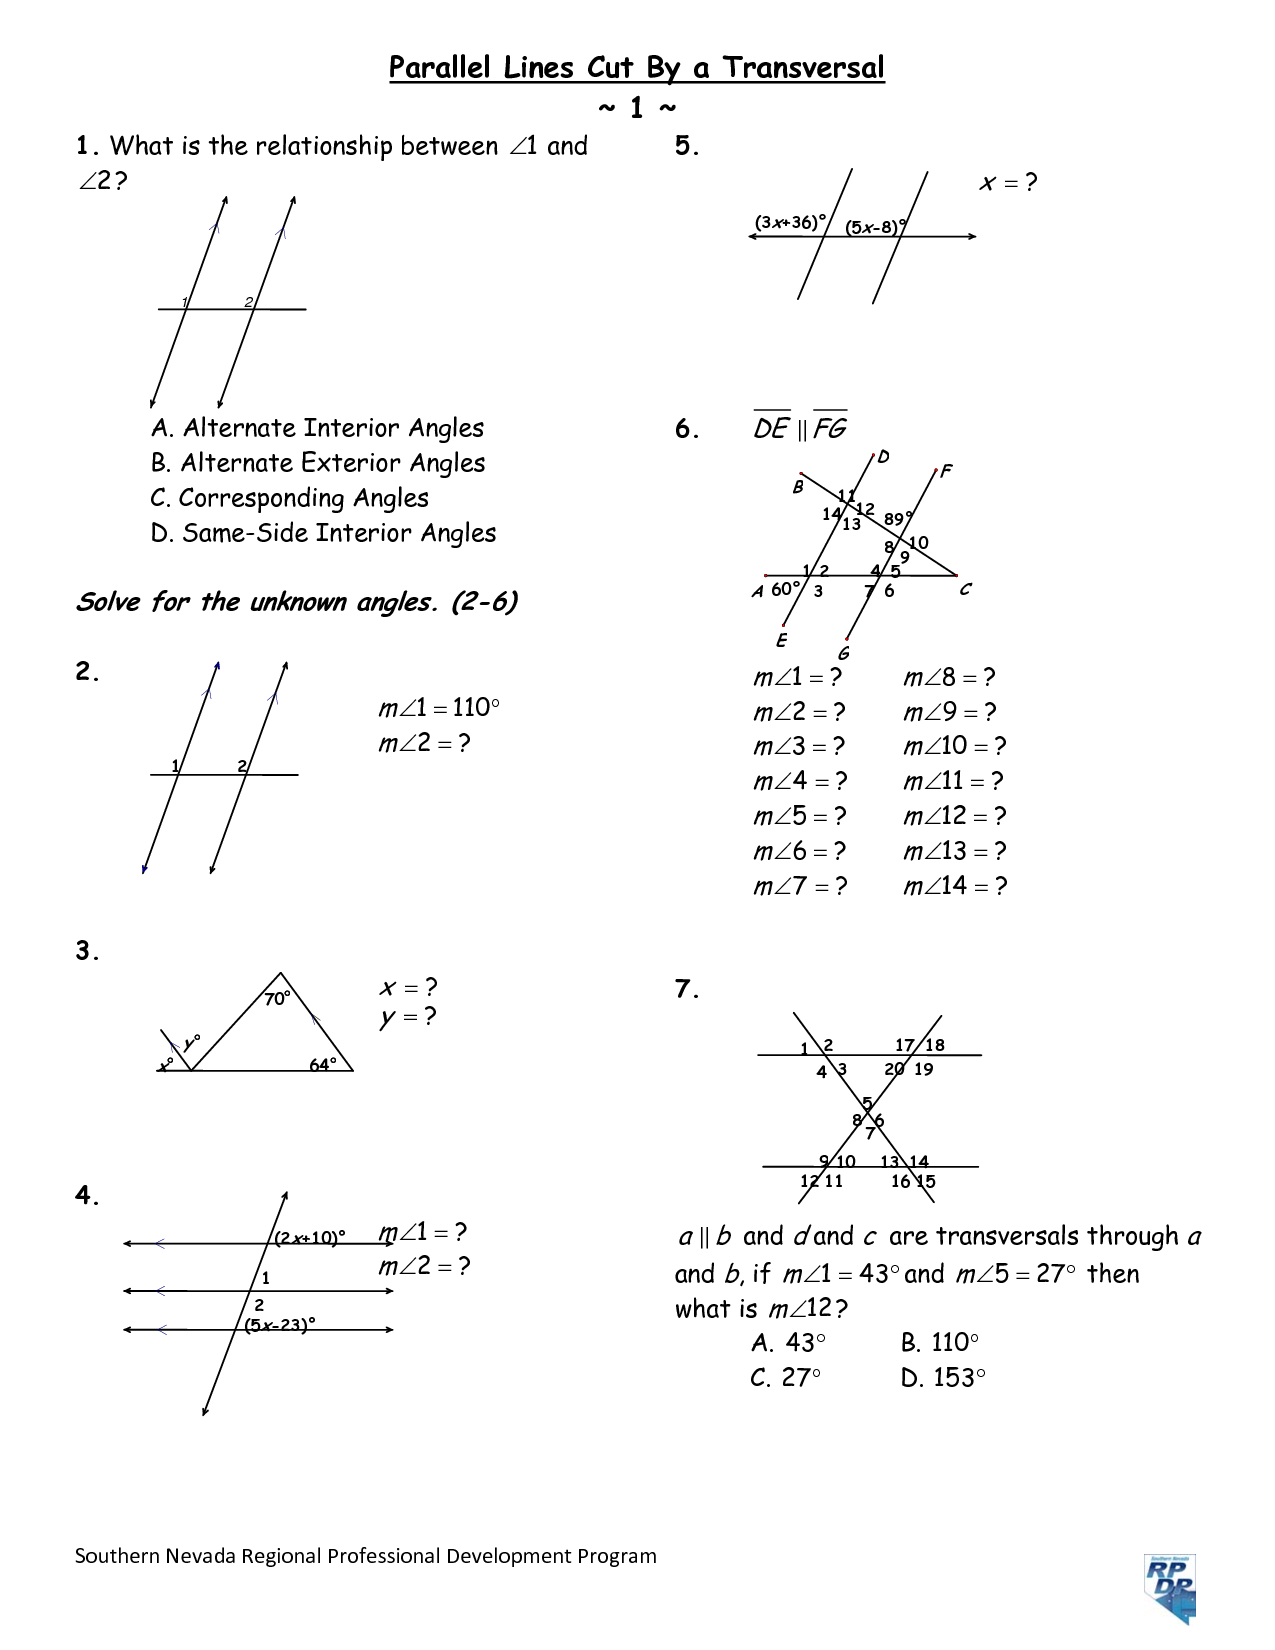 8 Best Images of Parallel Lines And Angles Worksheet  Angles with Parallel Lines Worksheet